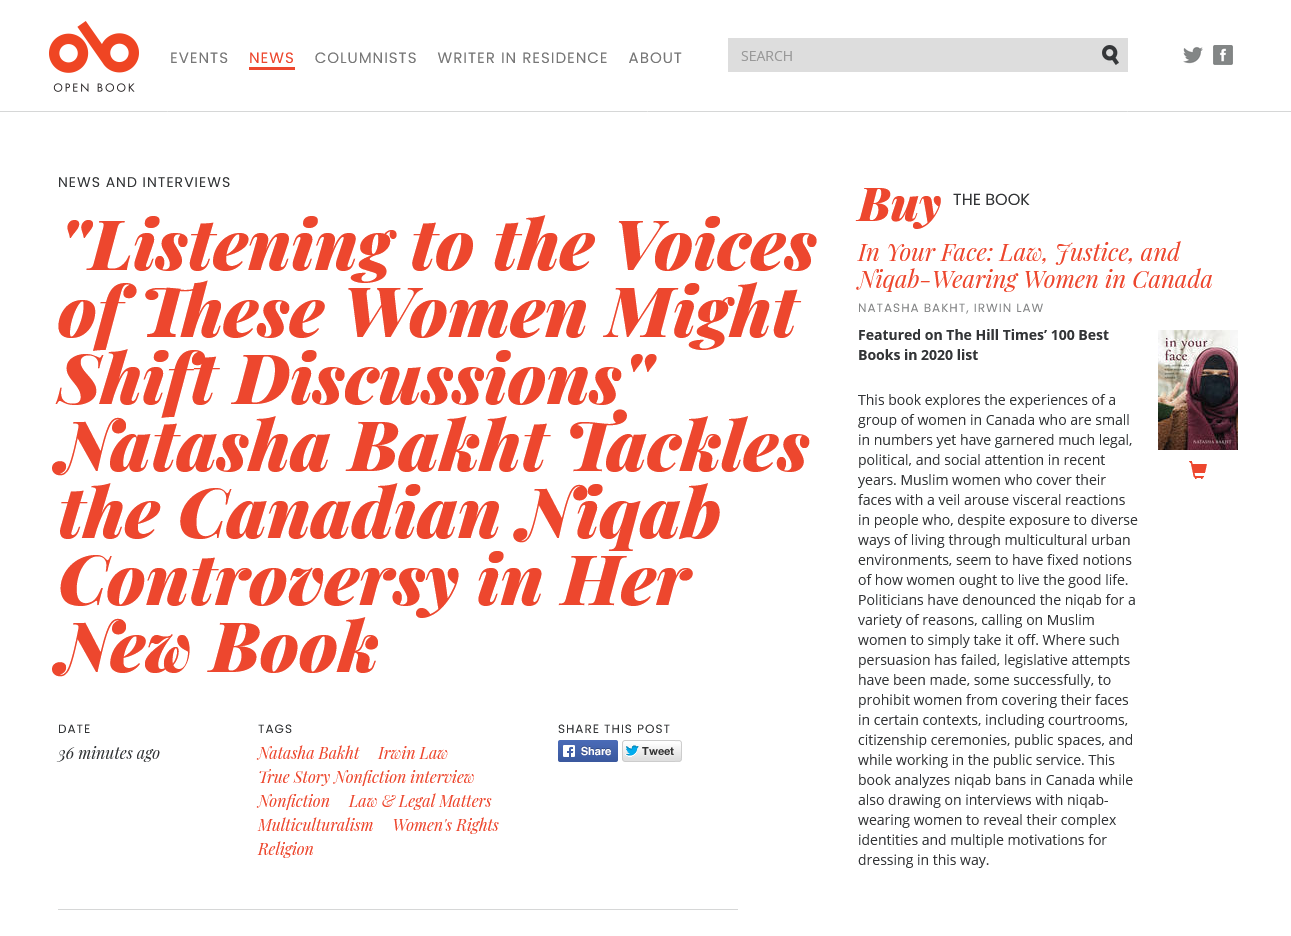 Screenshot of an interview with Natasha Bakht on the Open Book website.